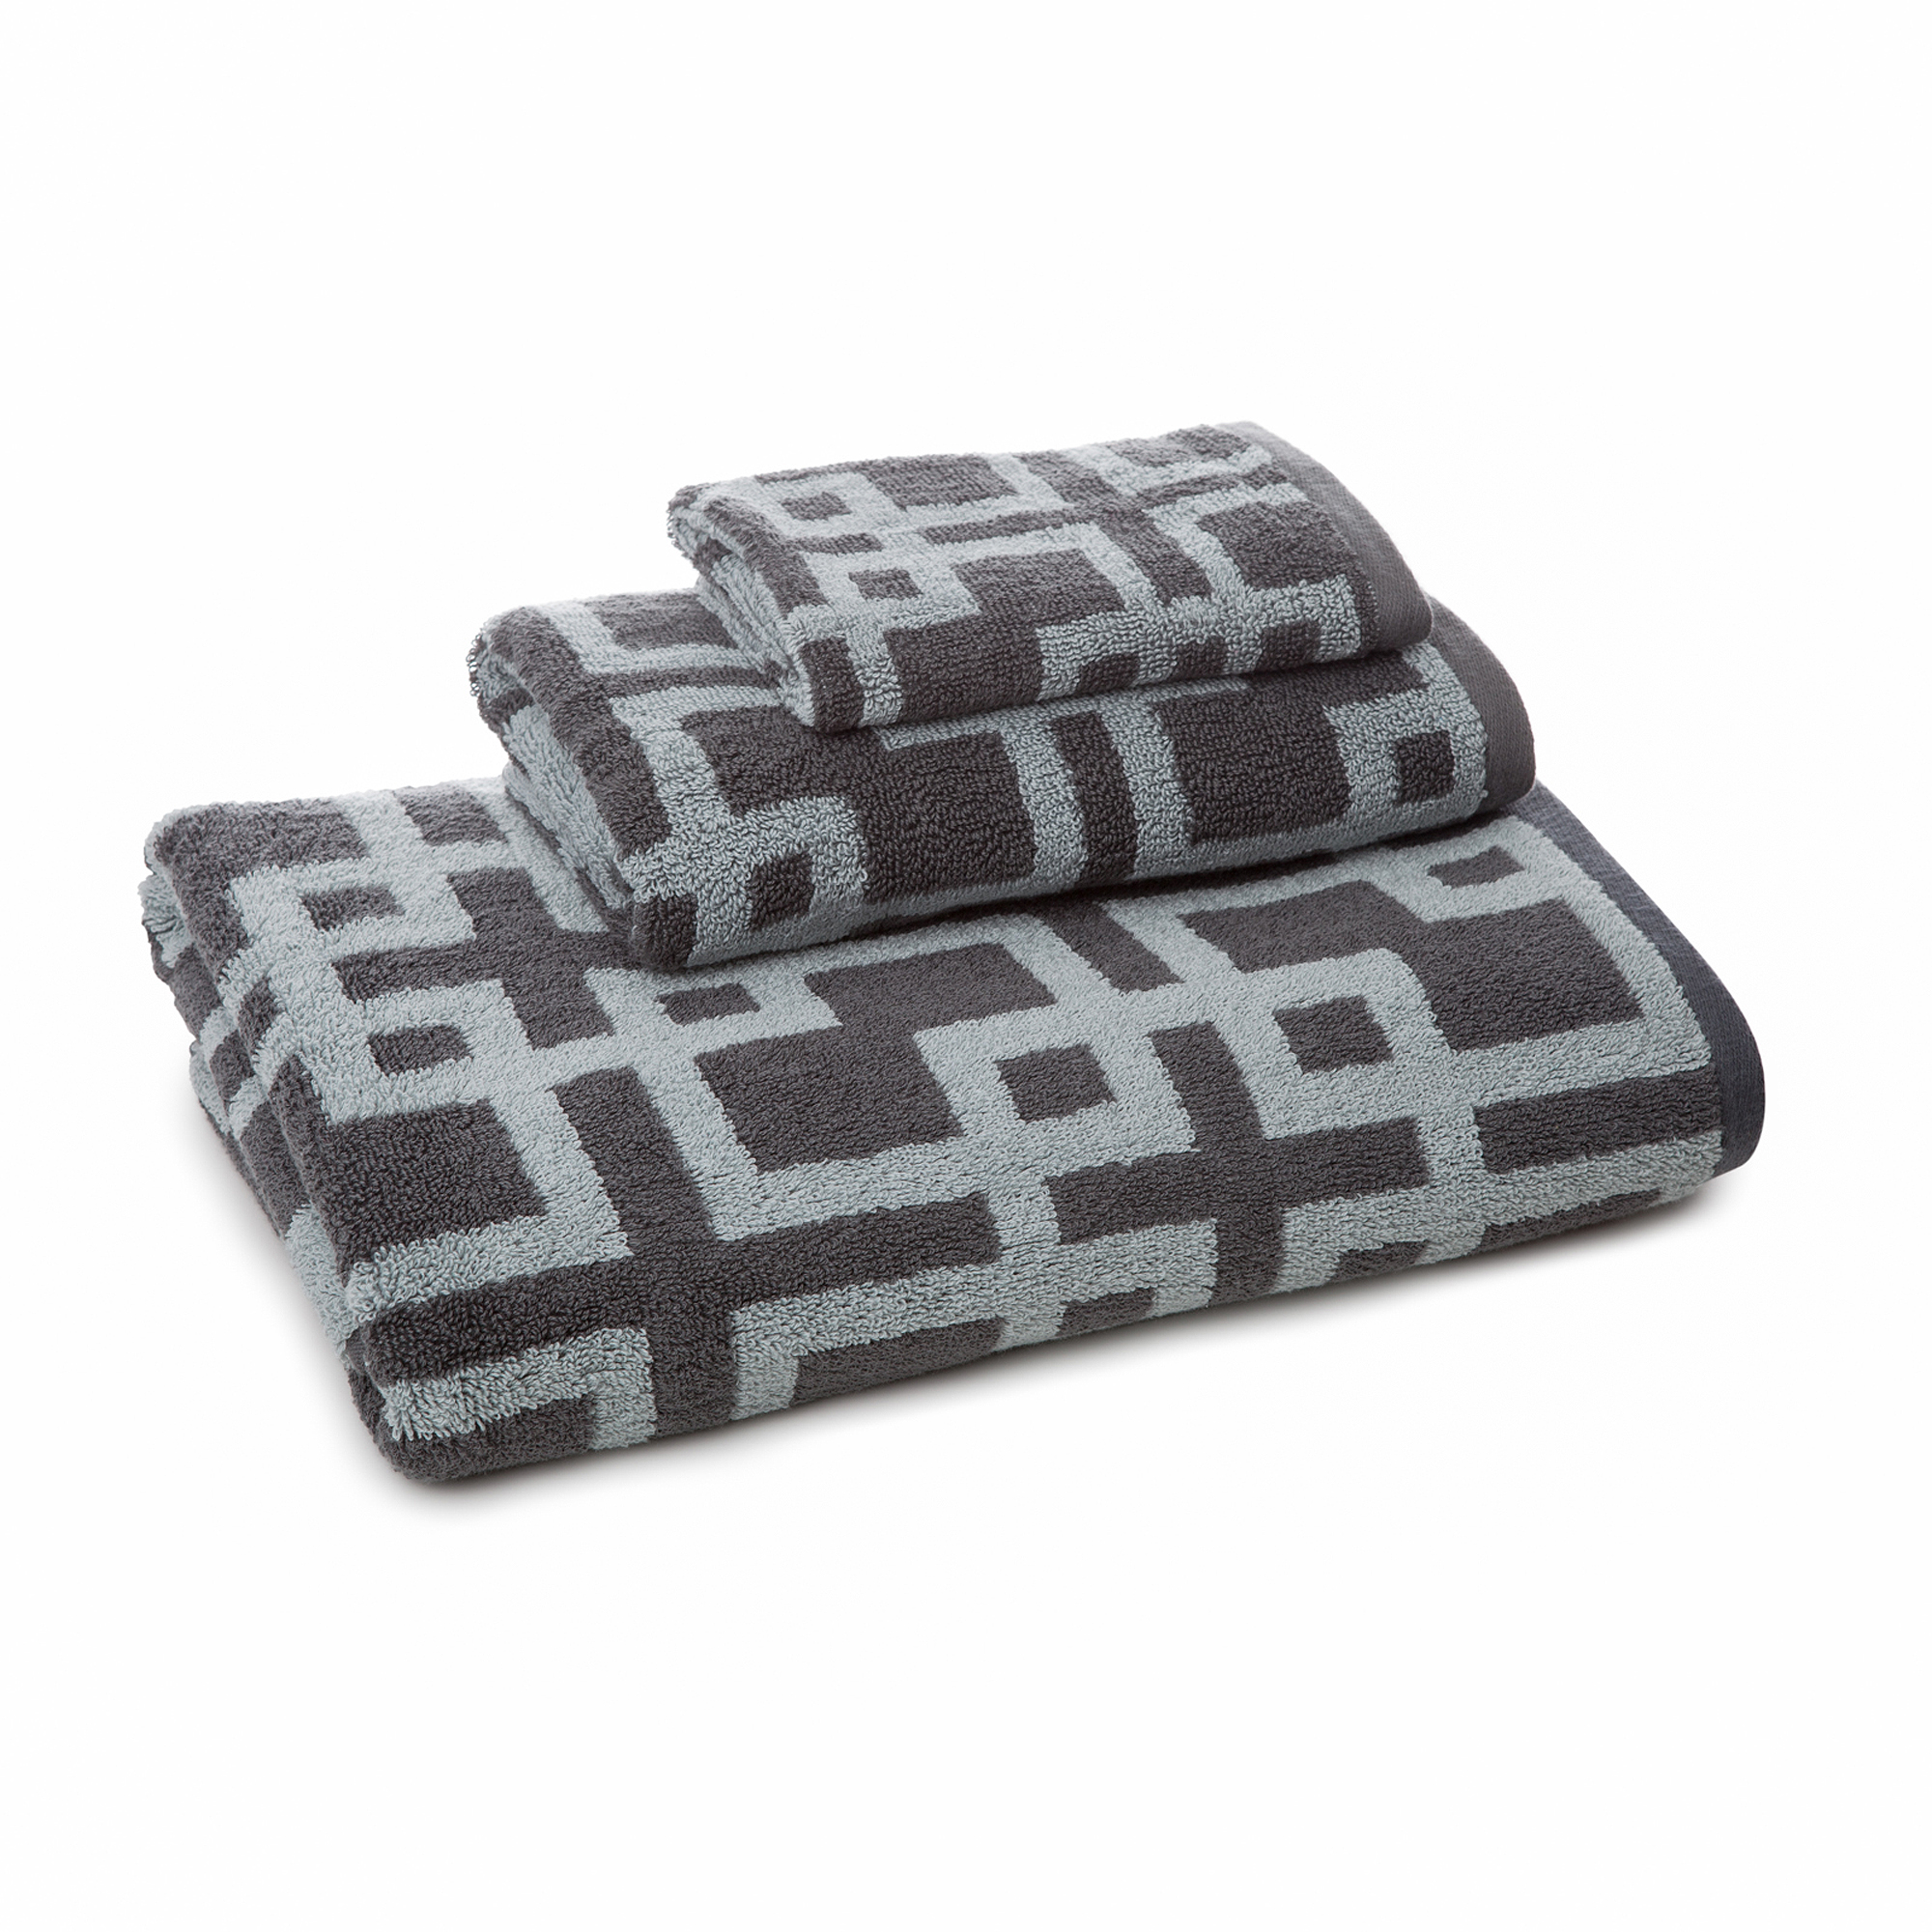 Vicki Payne Home Chippendale 3-Piece Bath Towel Set